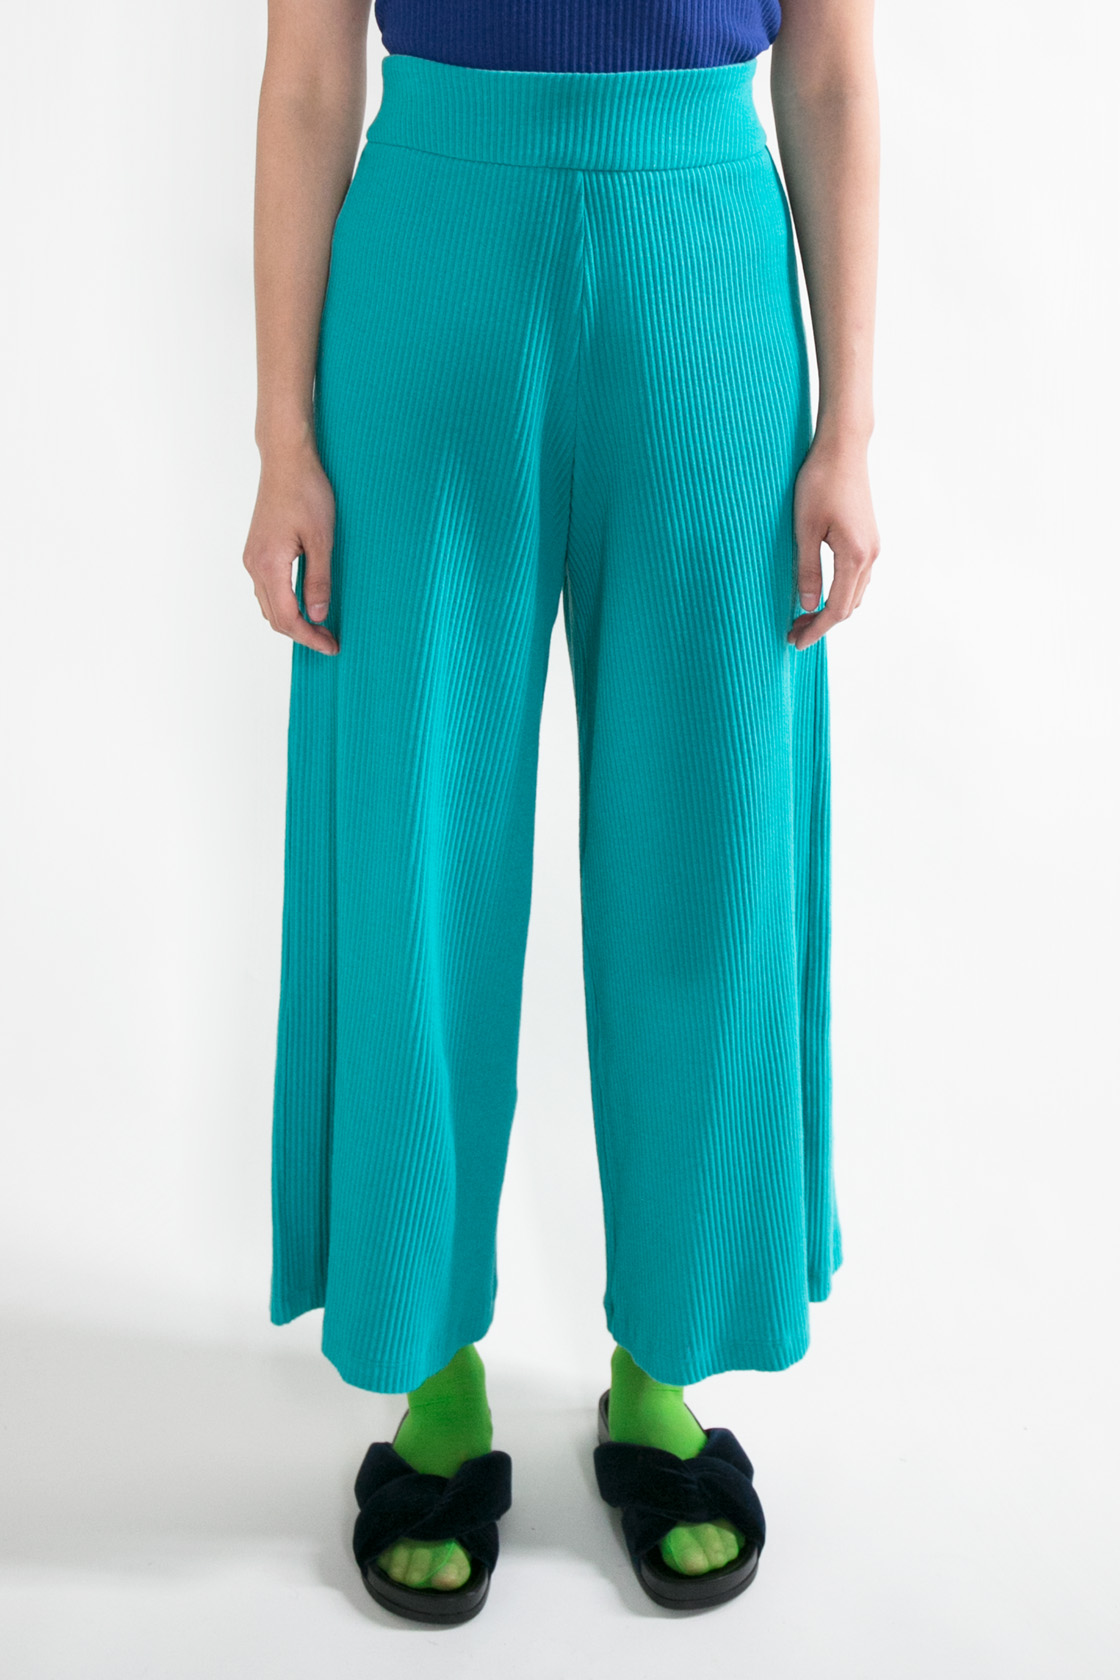 Basic Color Pant in Green  XS S M L  $270